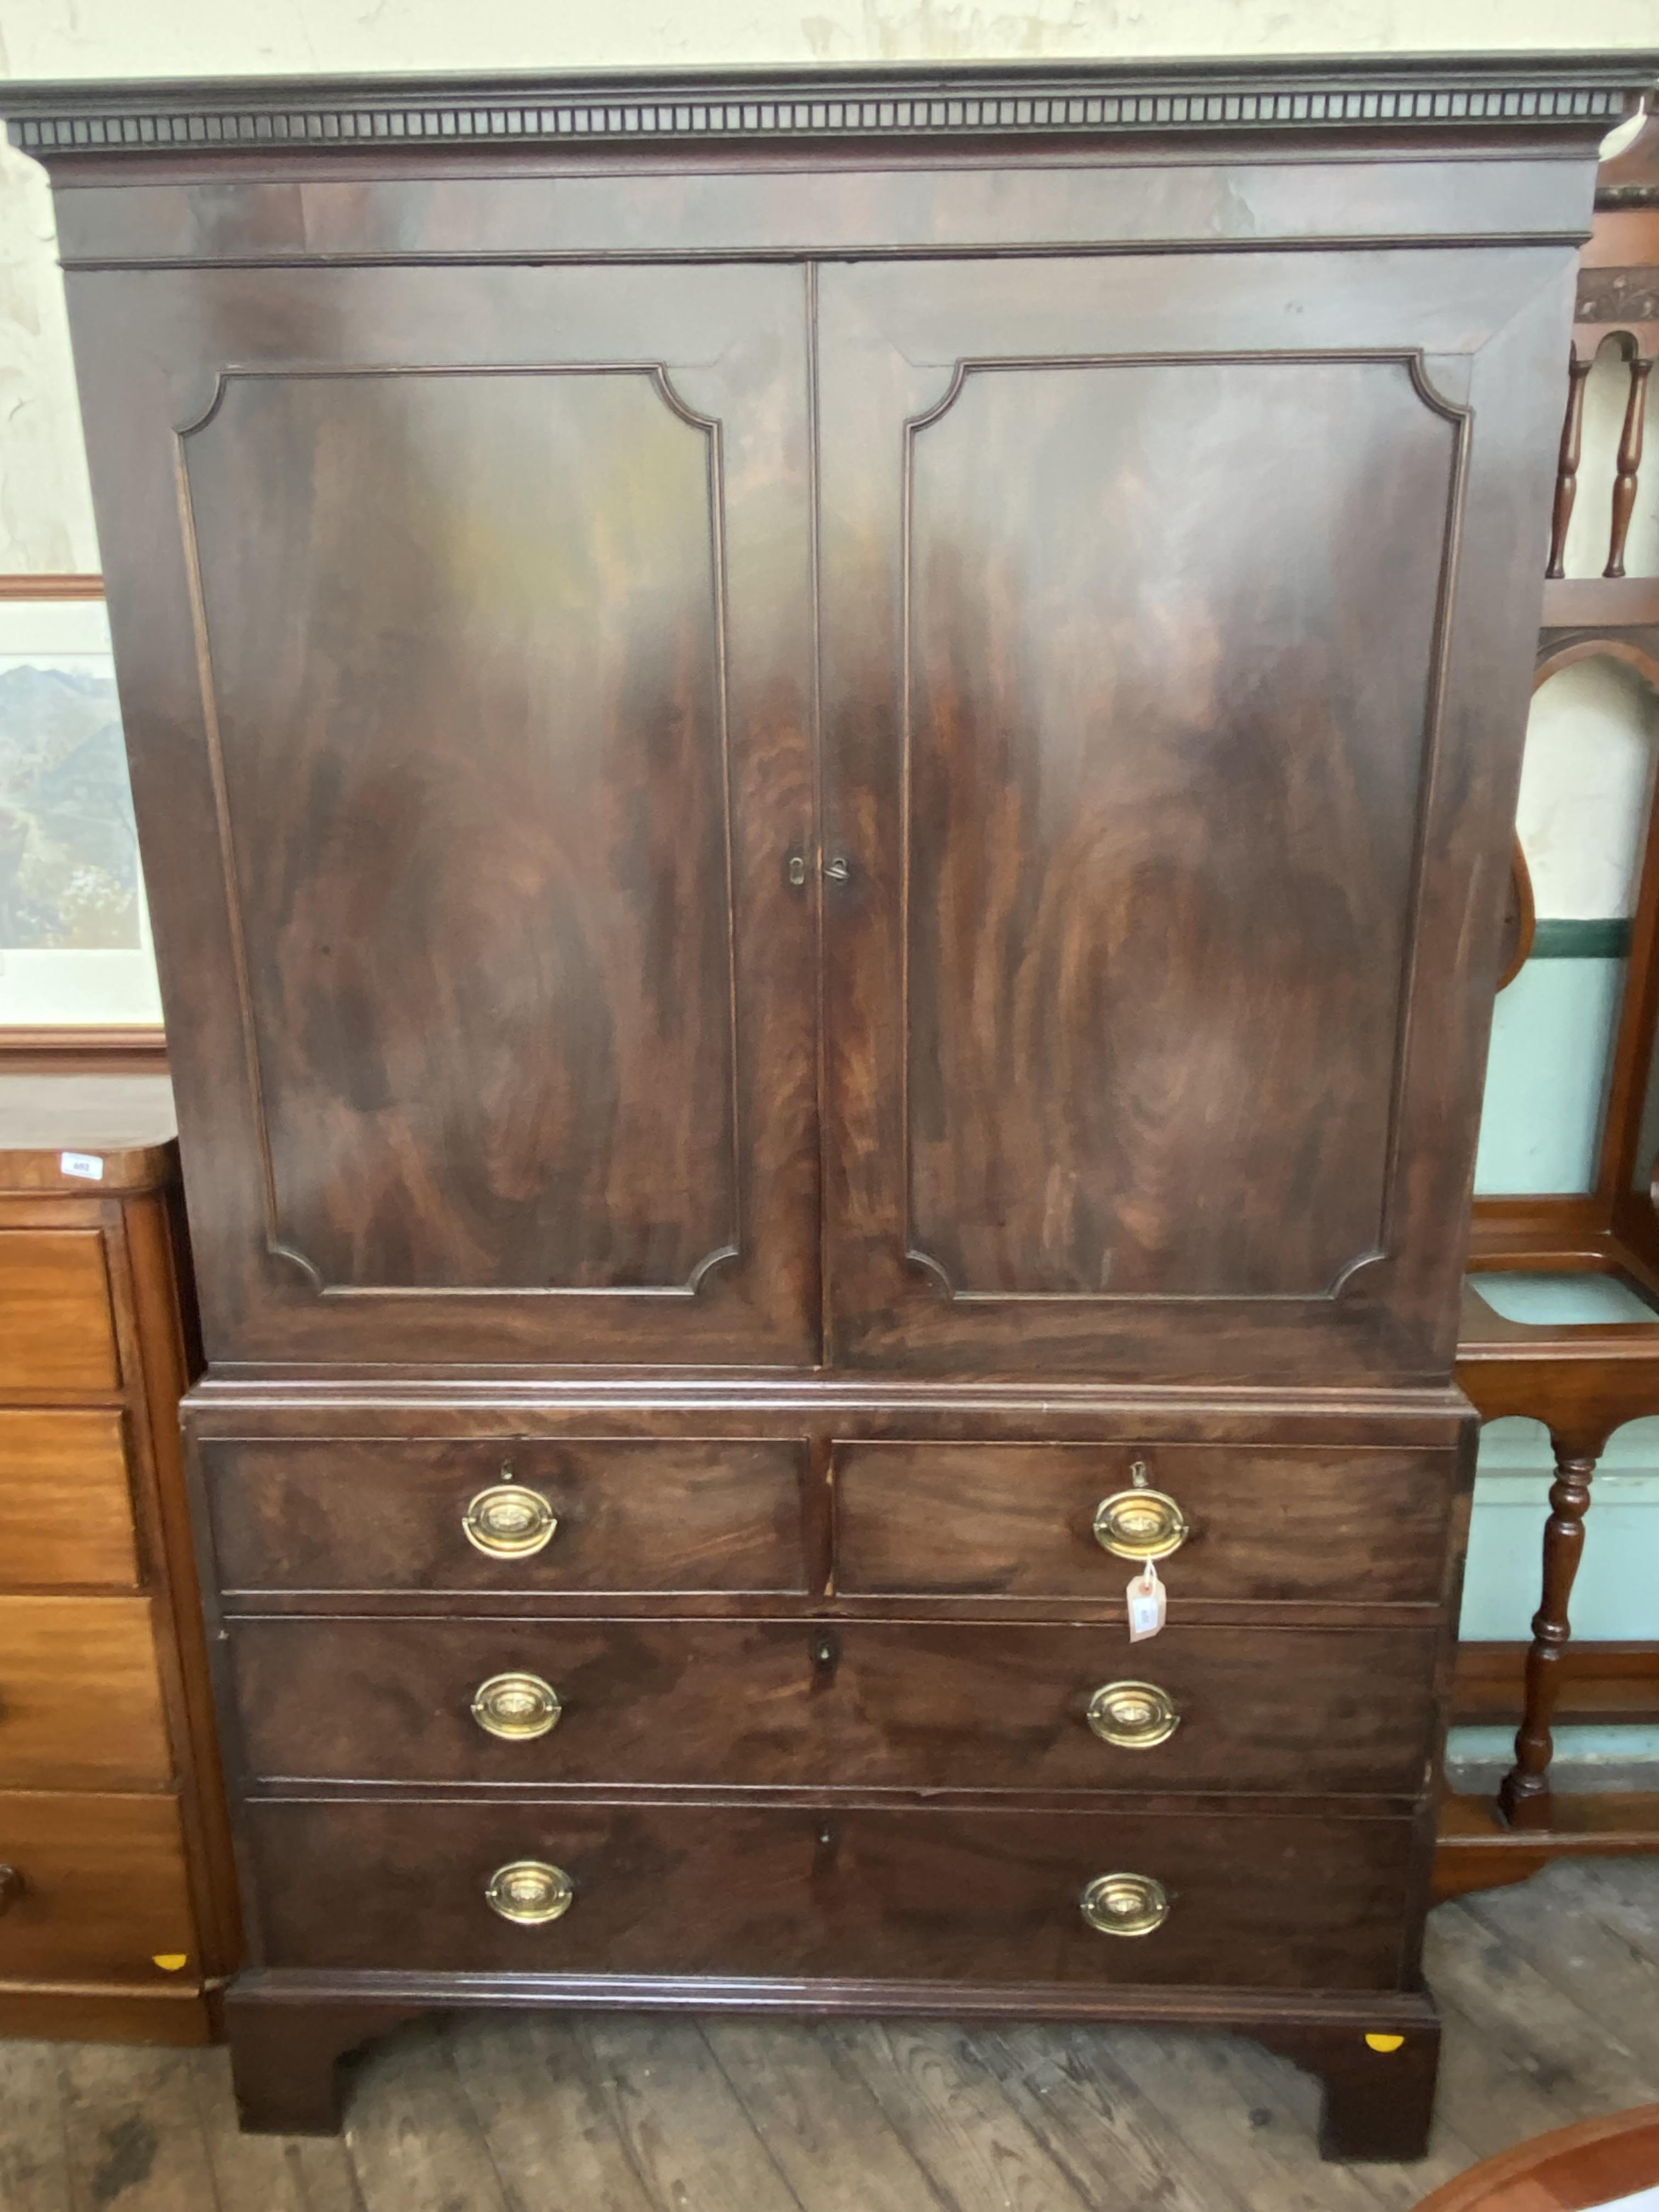 Figured mahogany linen press fitted 2 small and 2 long base drawers all with oval brass finger